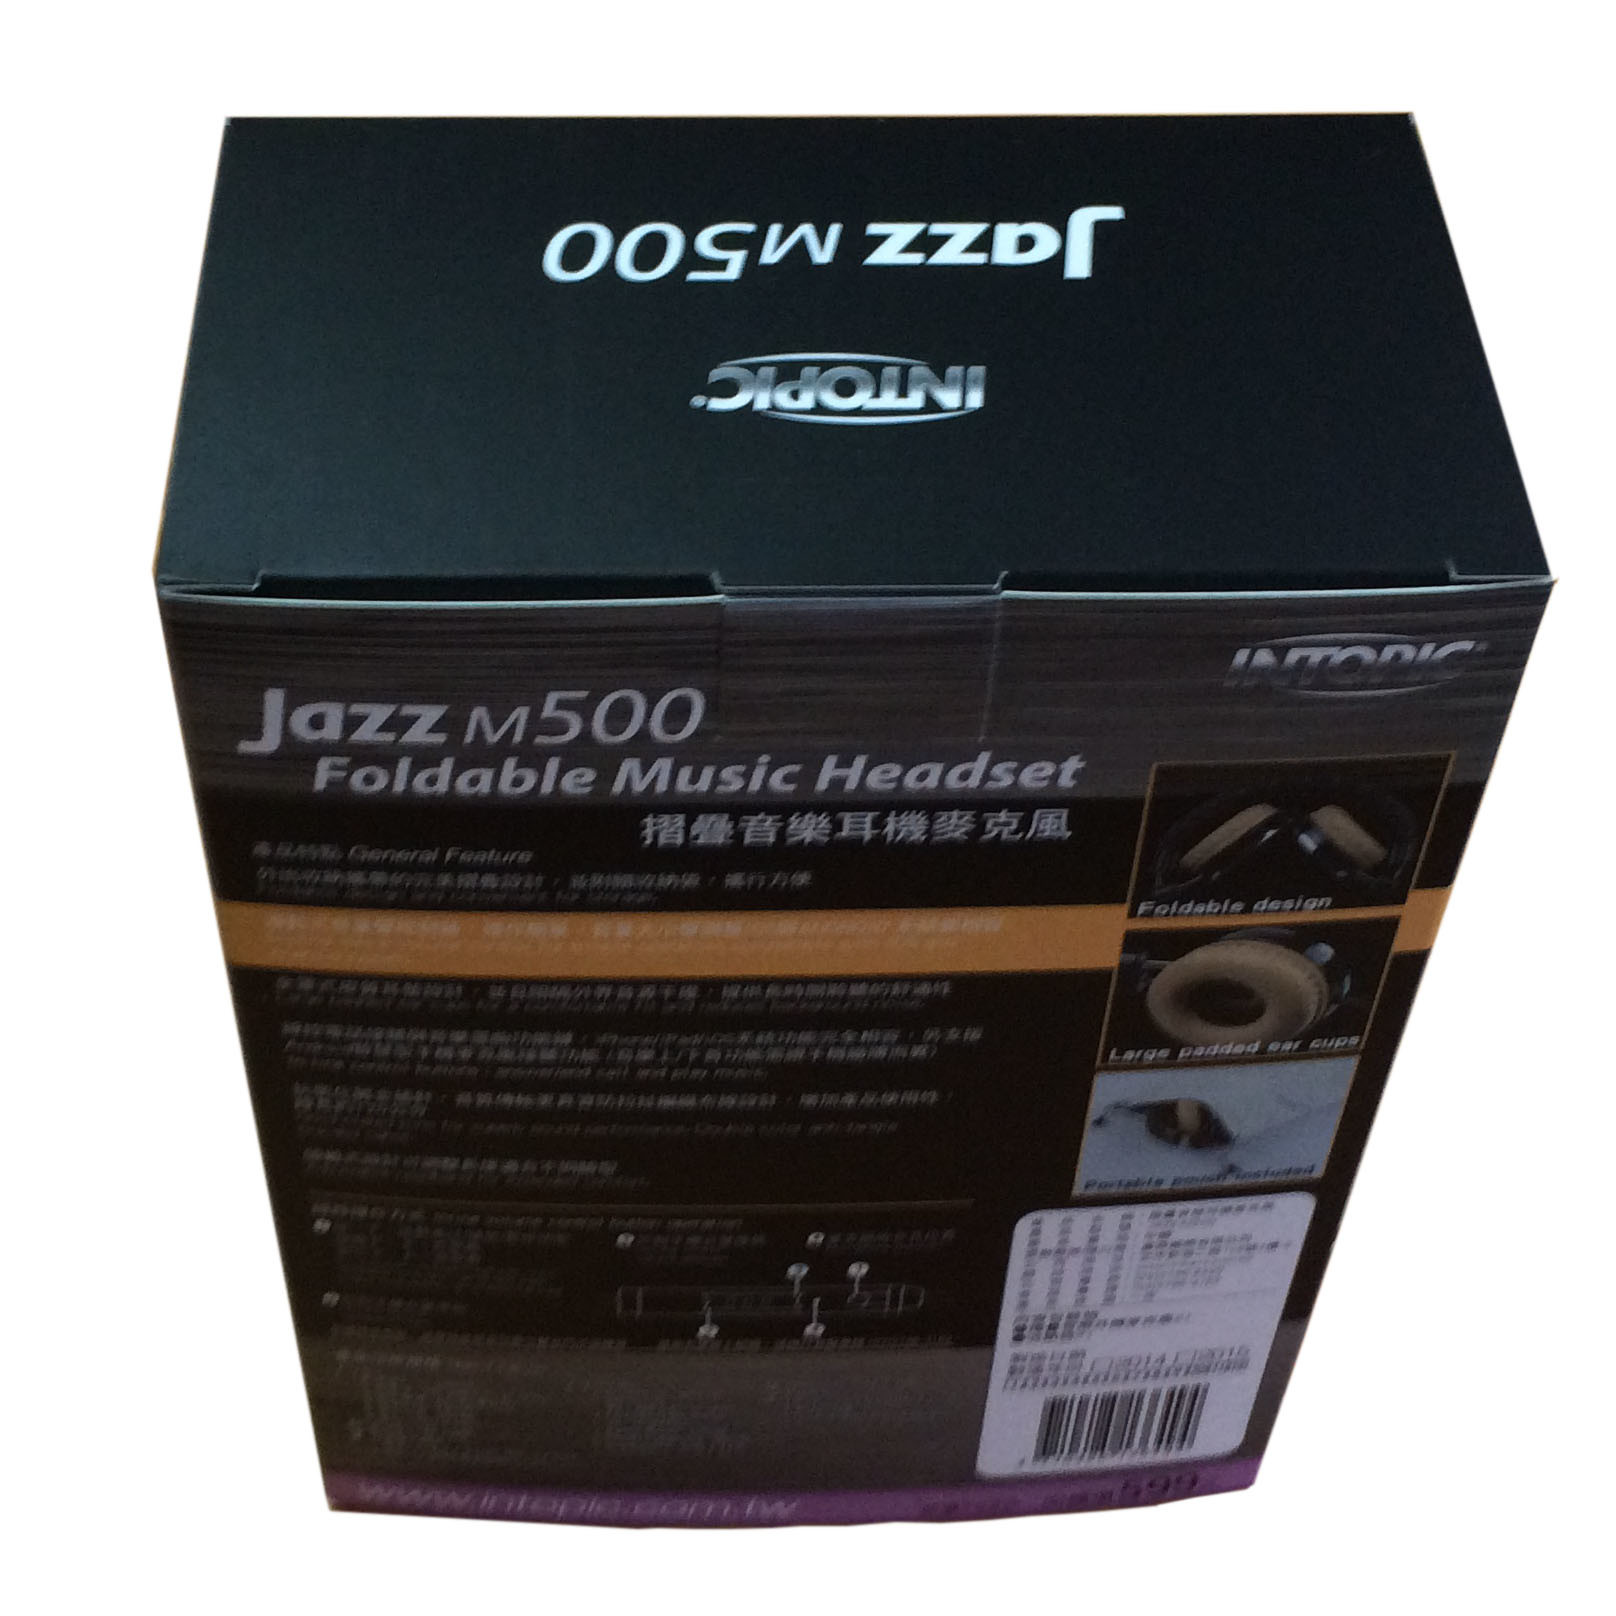 Hotsale Paper Printed Display Packing Box for Electronic Product